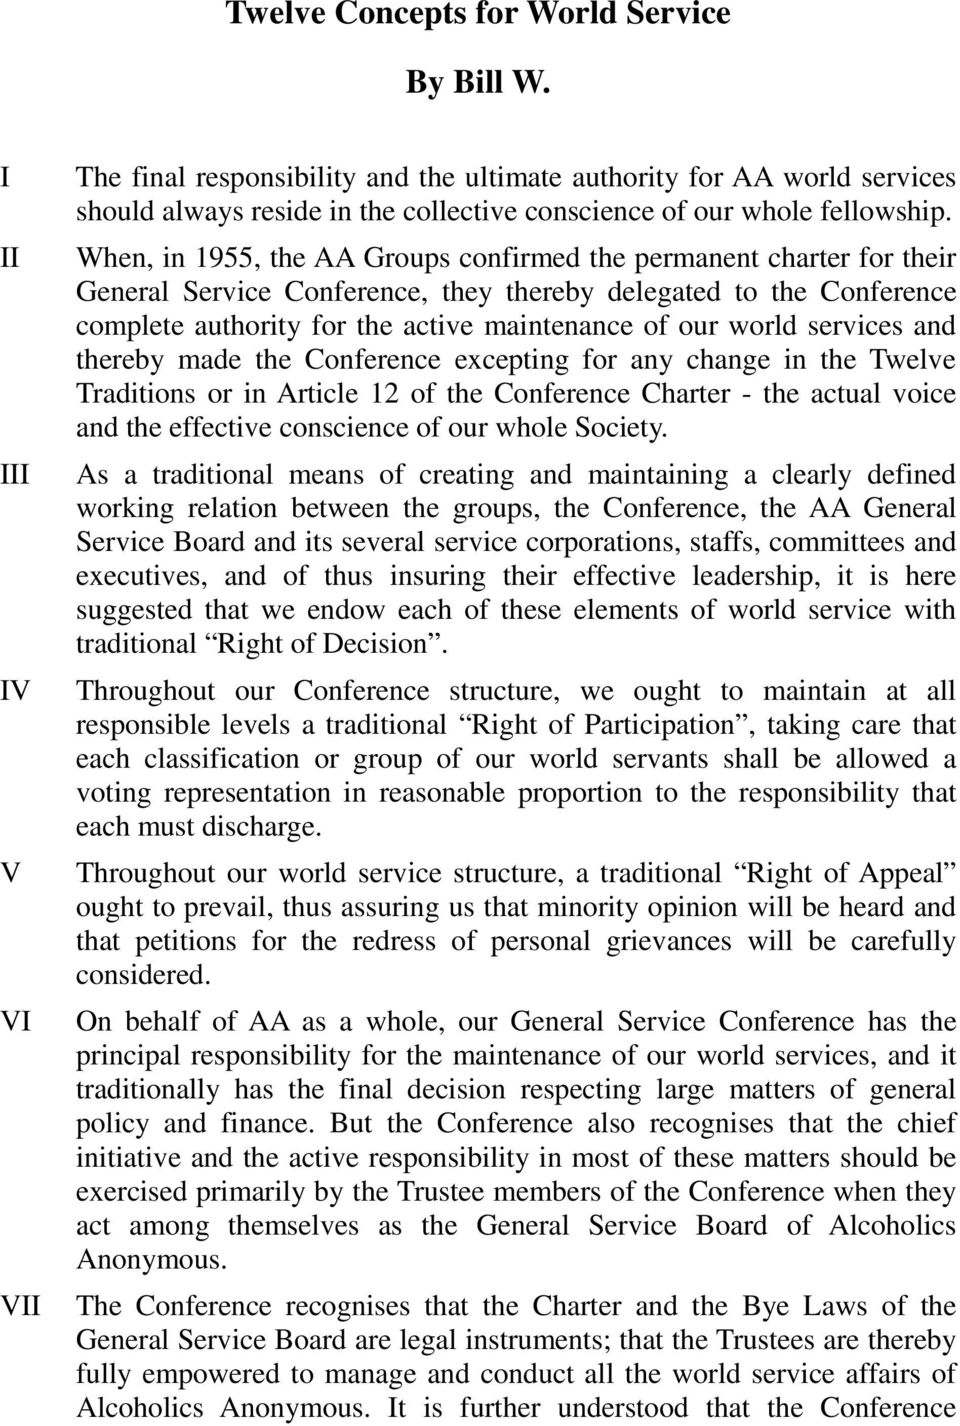 When, in 1955, the AA Groups confirmed the permanent charter for their General Service Conference, they thereby delegated to the Conference complete authority for the active maintenance of our world